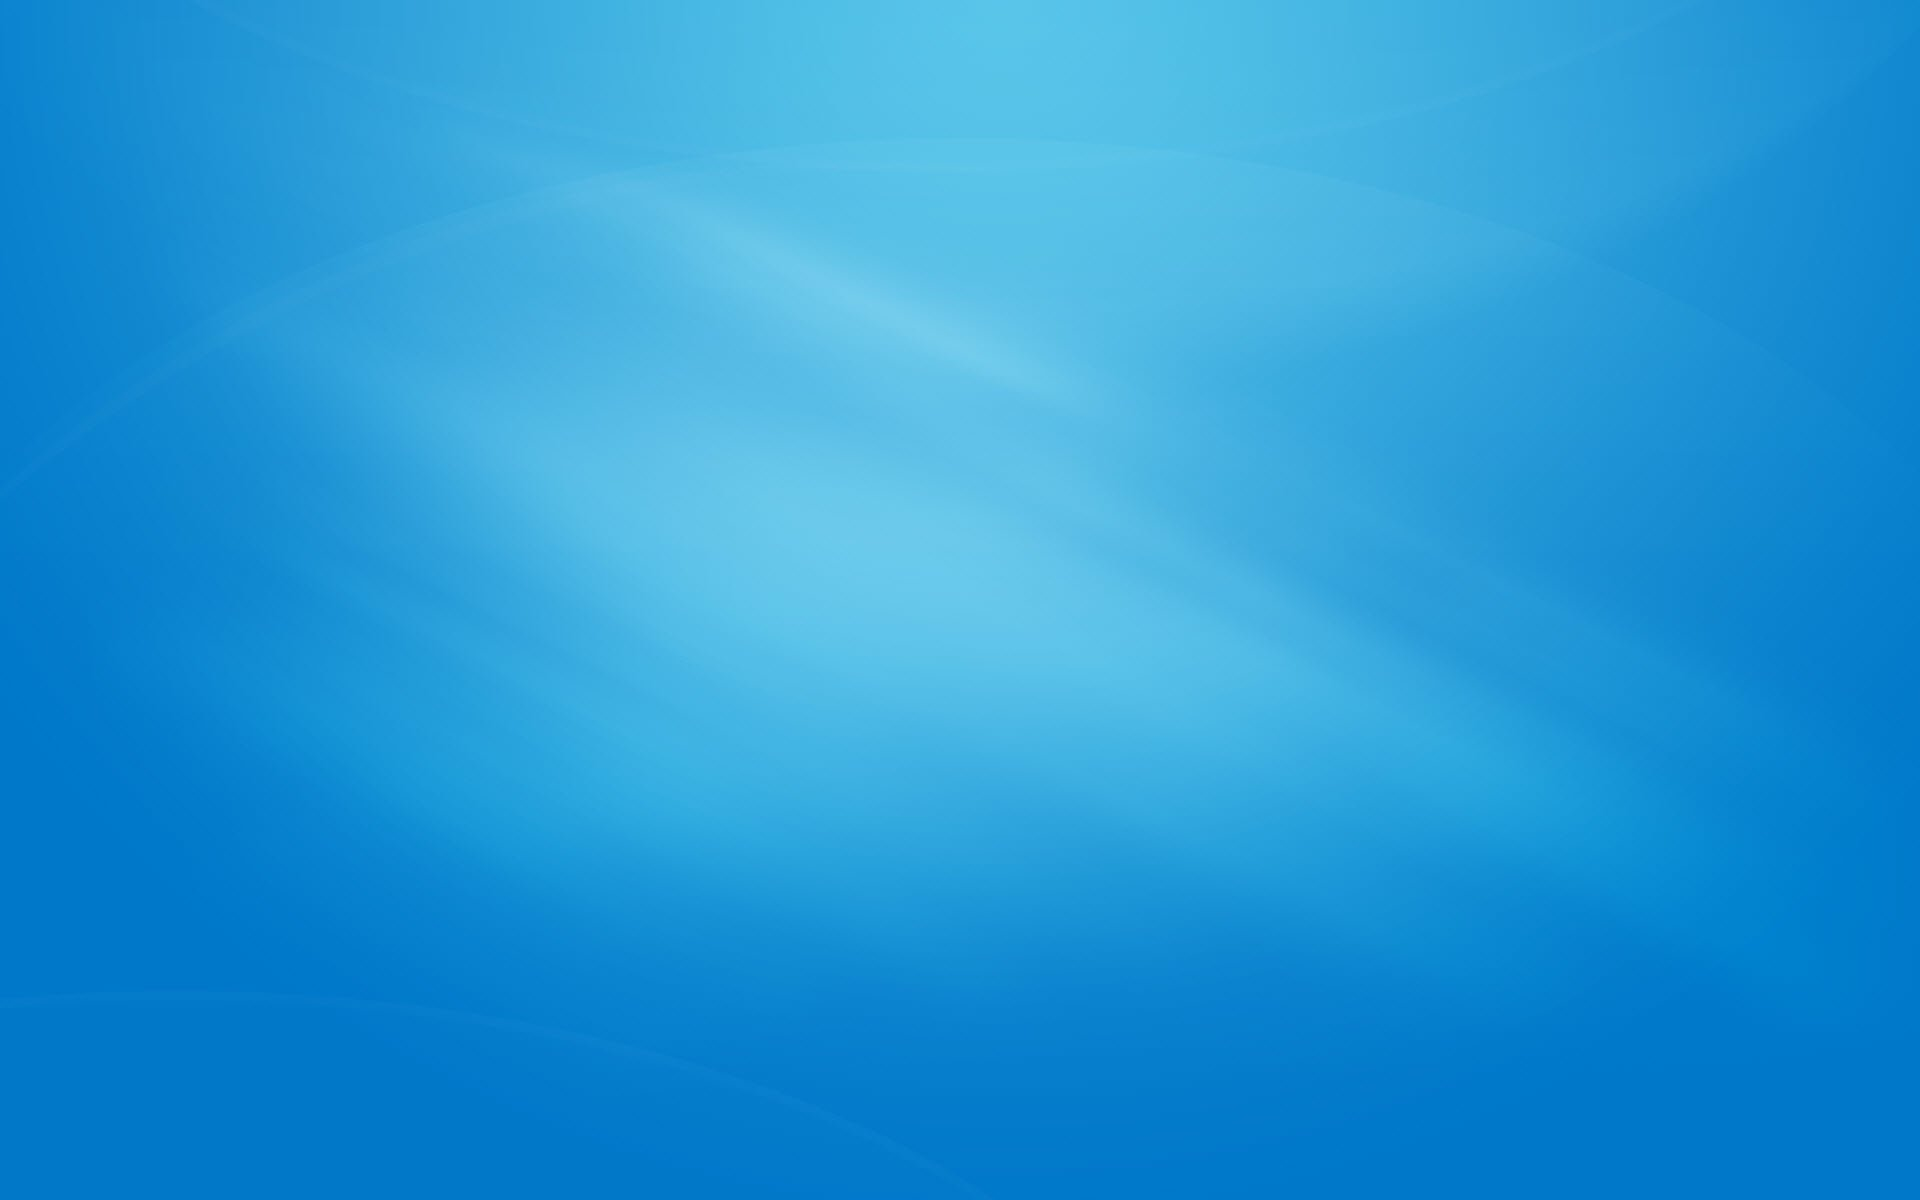 ... Blue Cloth Background 2 ...